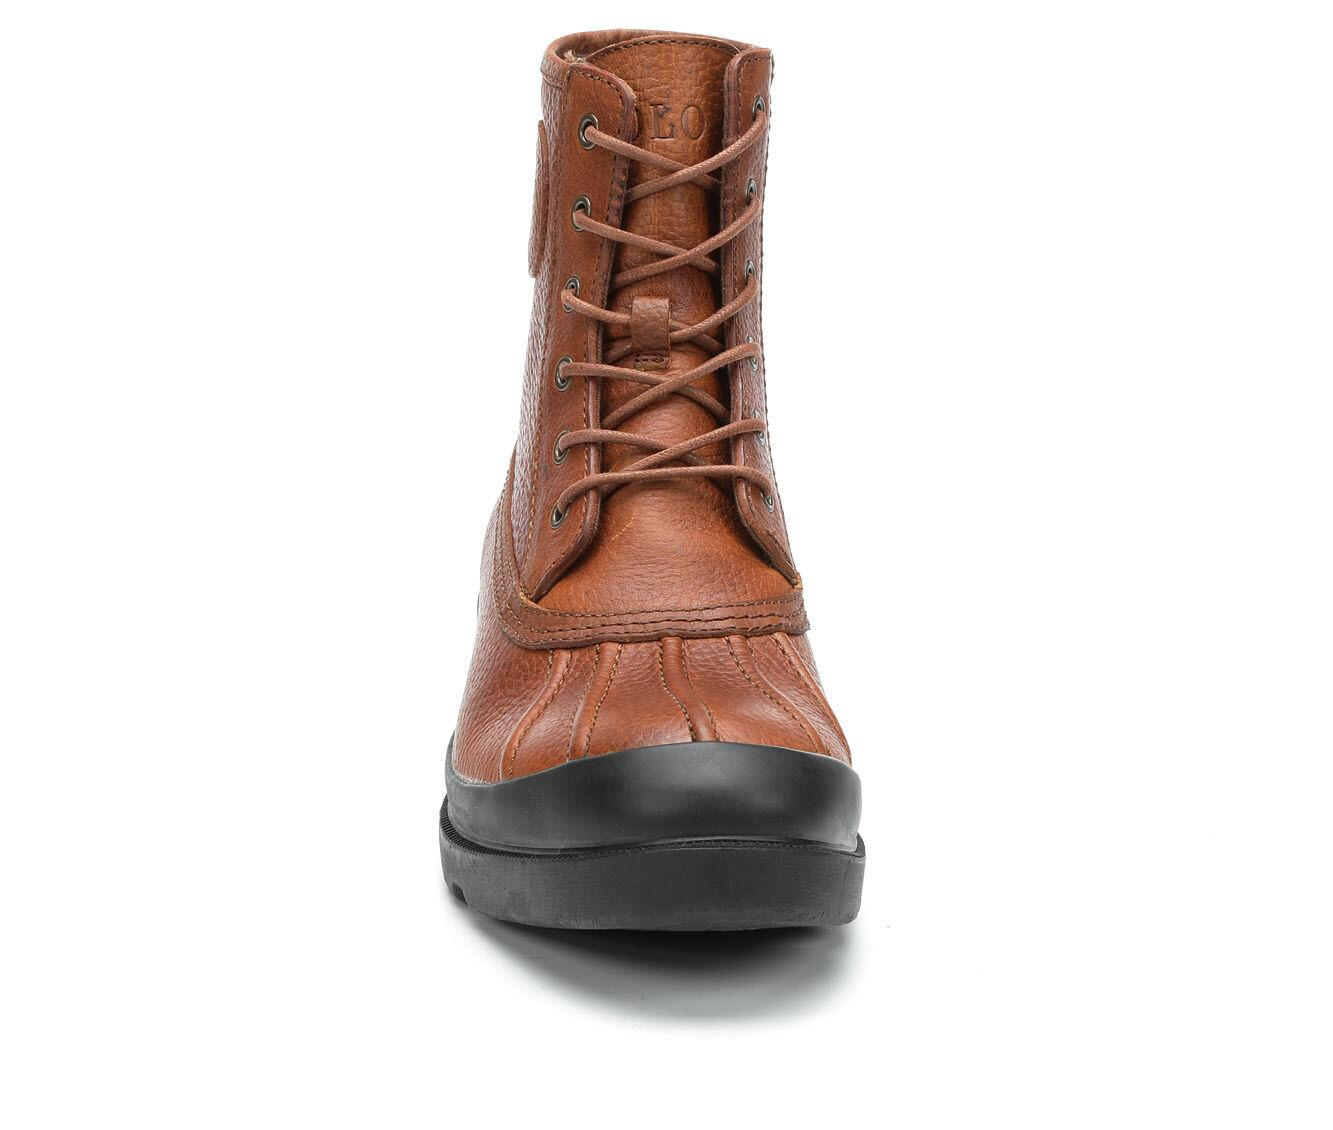 Polo Ralph Lauren Leather Udel Boot in